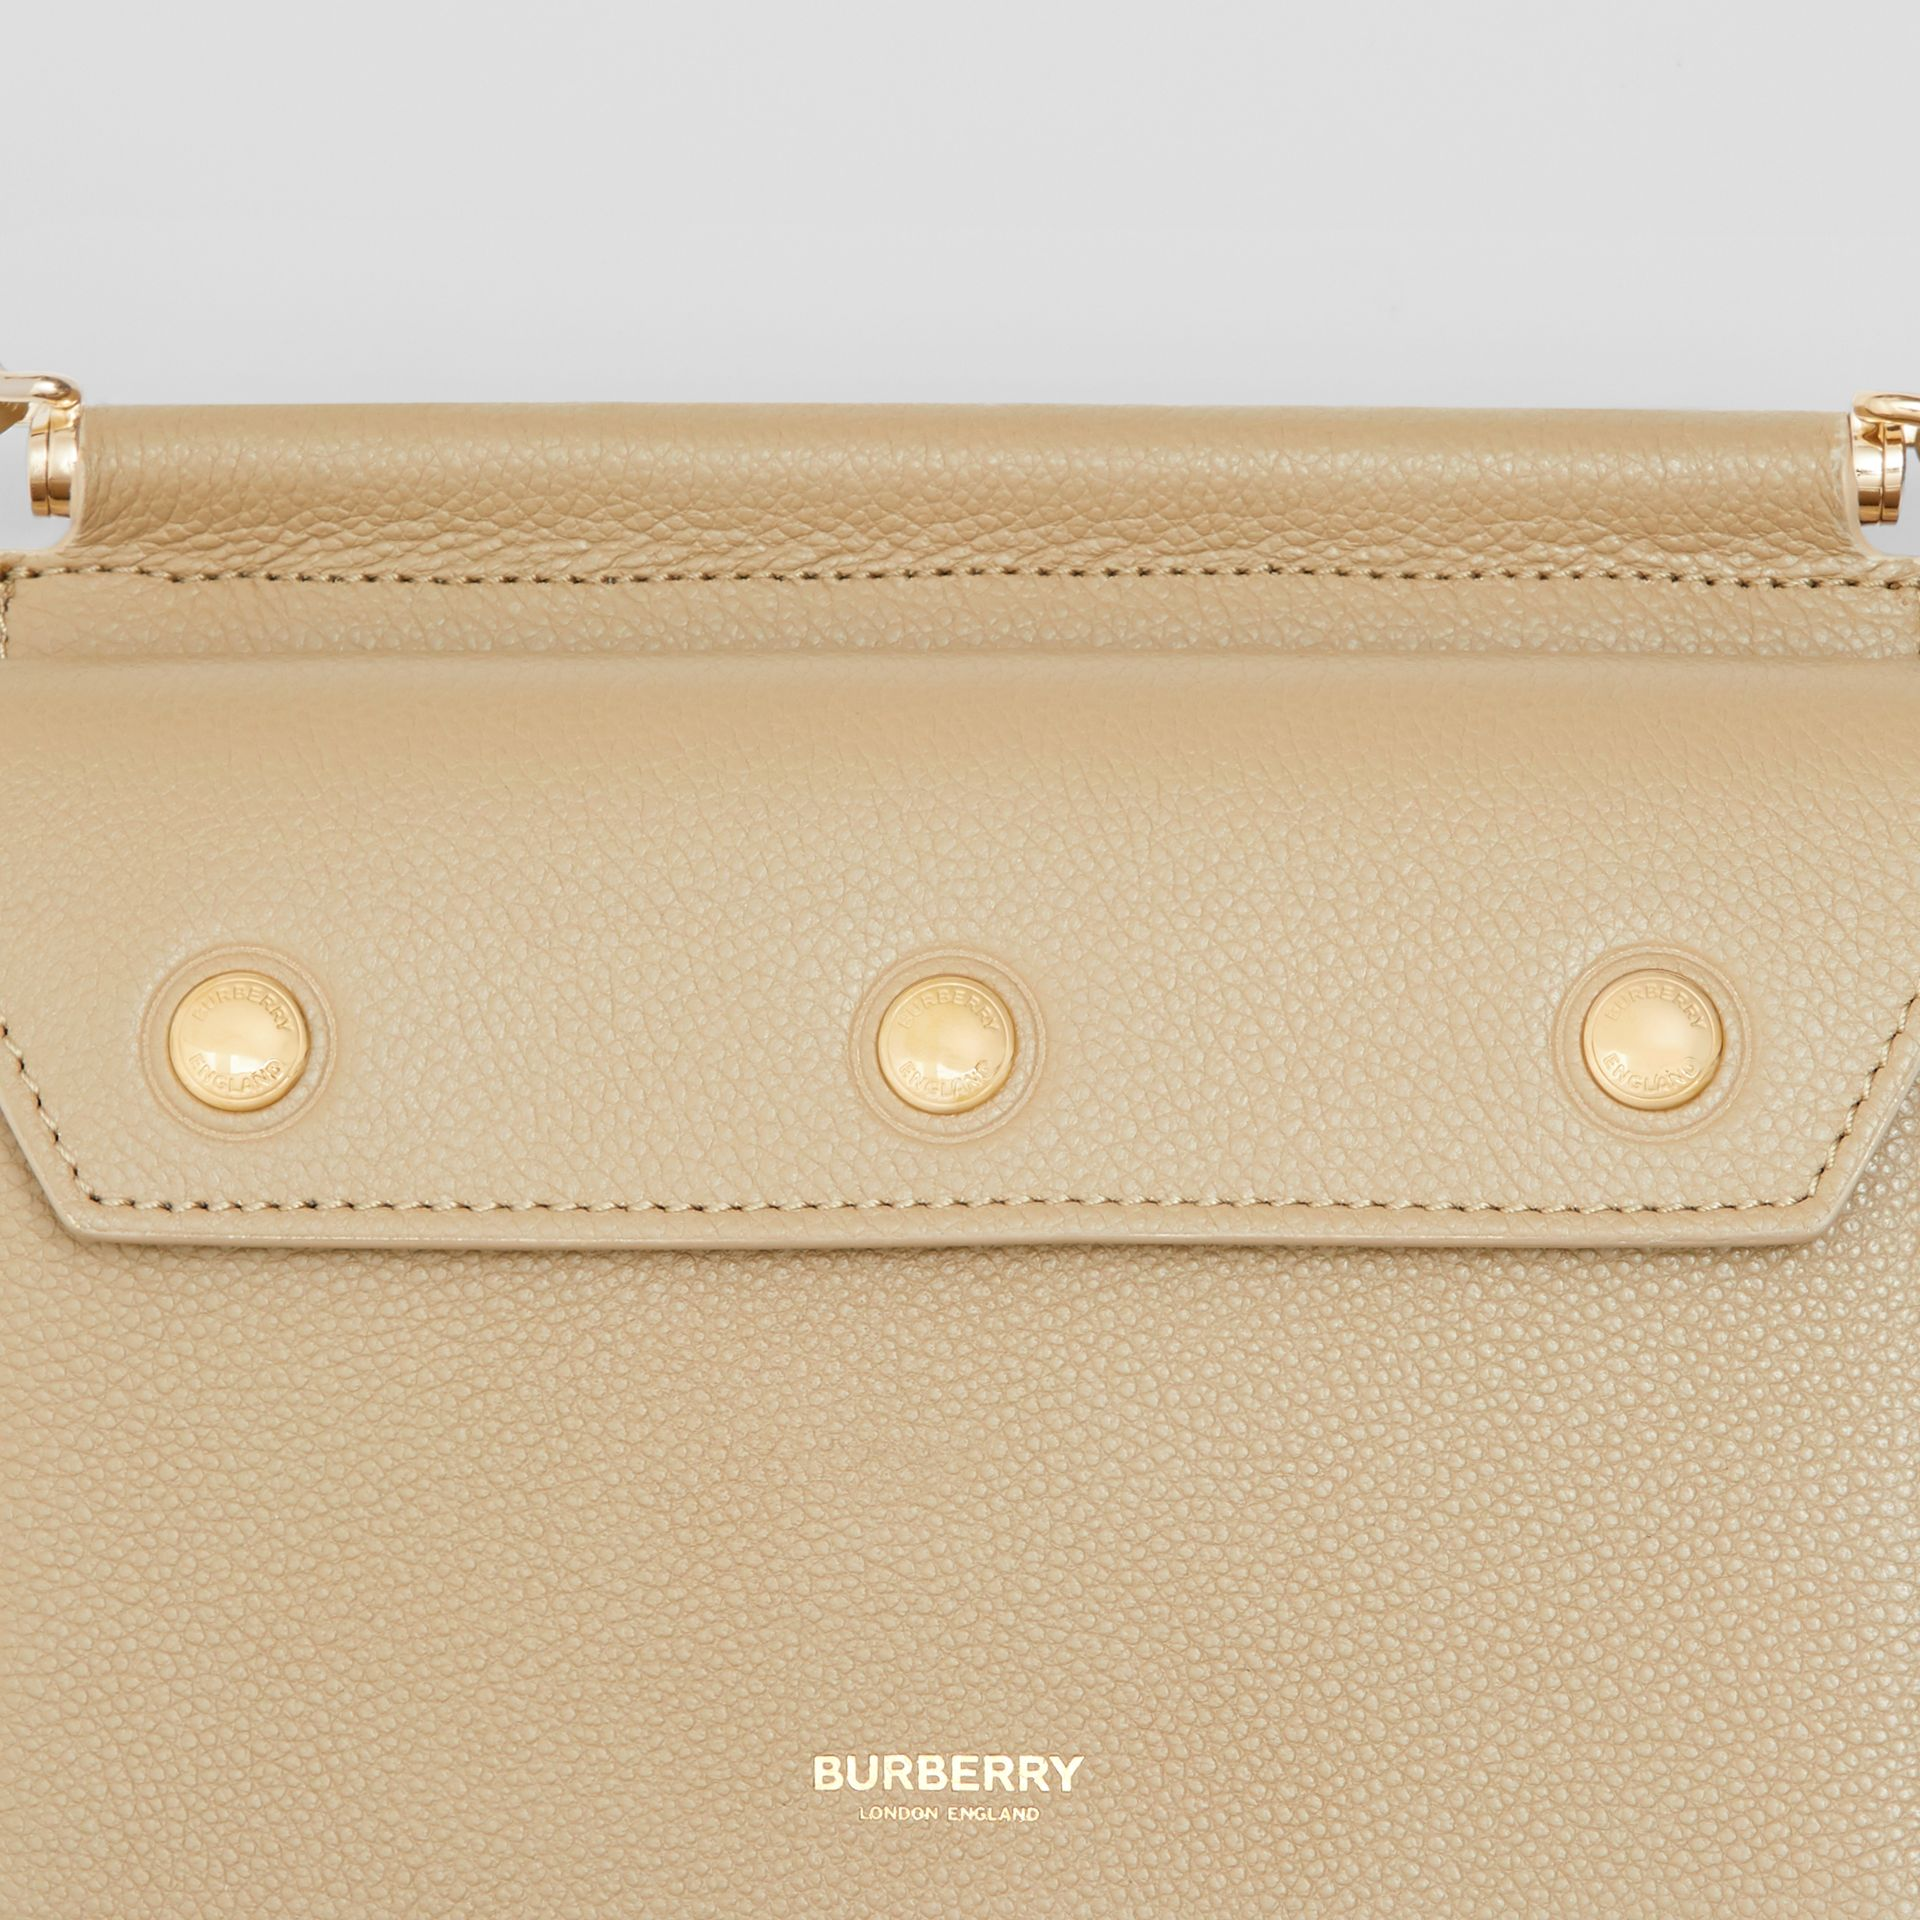 Mini Leather Title Bag in Honey - Women | Burberry - gallery image 1